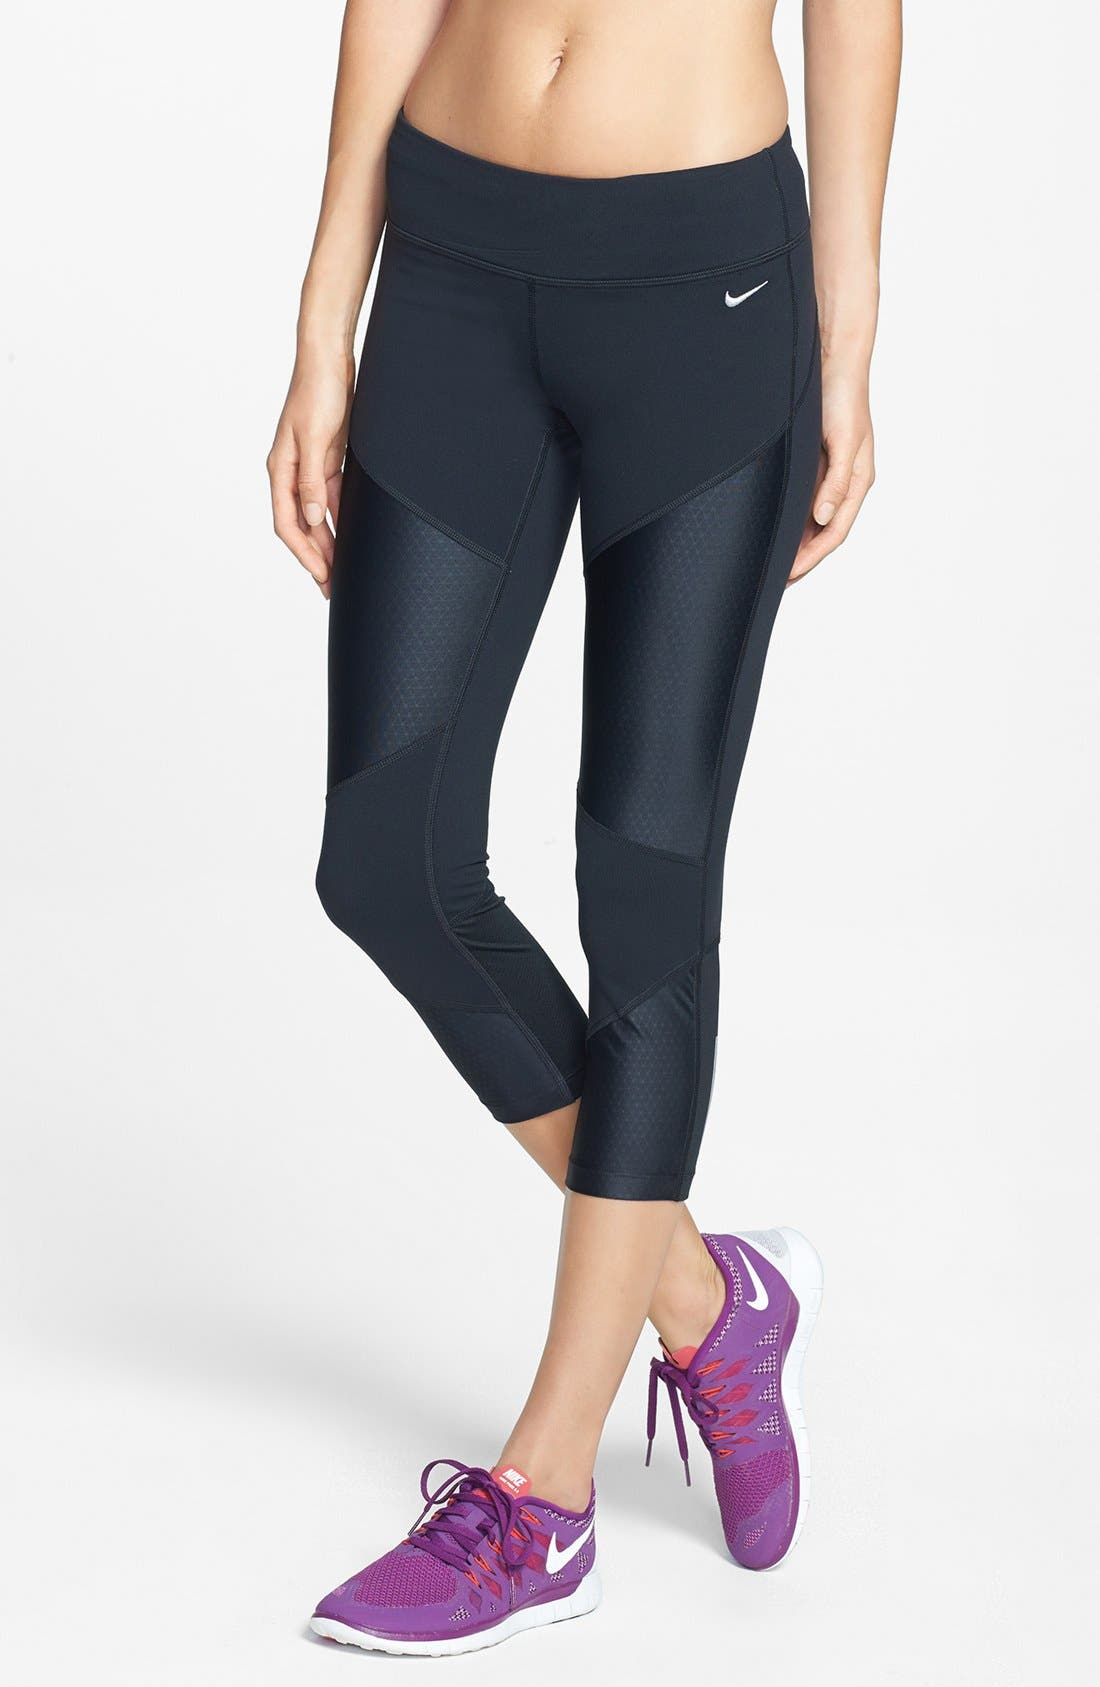 Main Image - Nike 'Strut' Dri-FIT Crop Tights